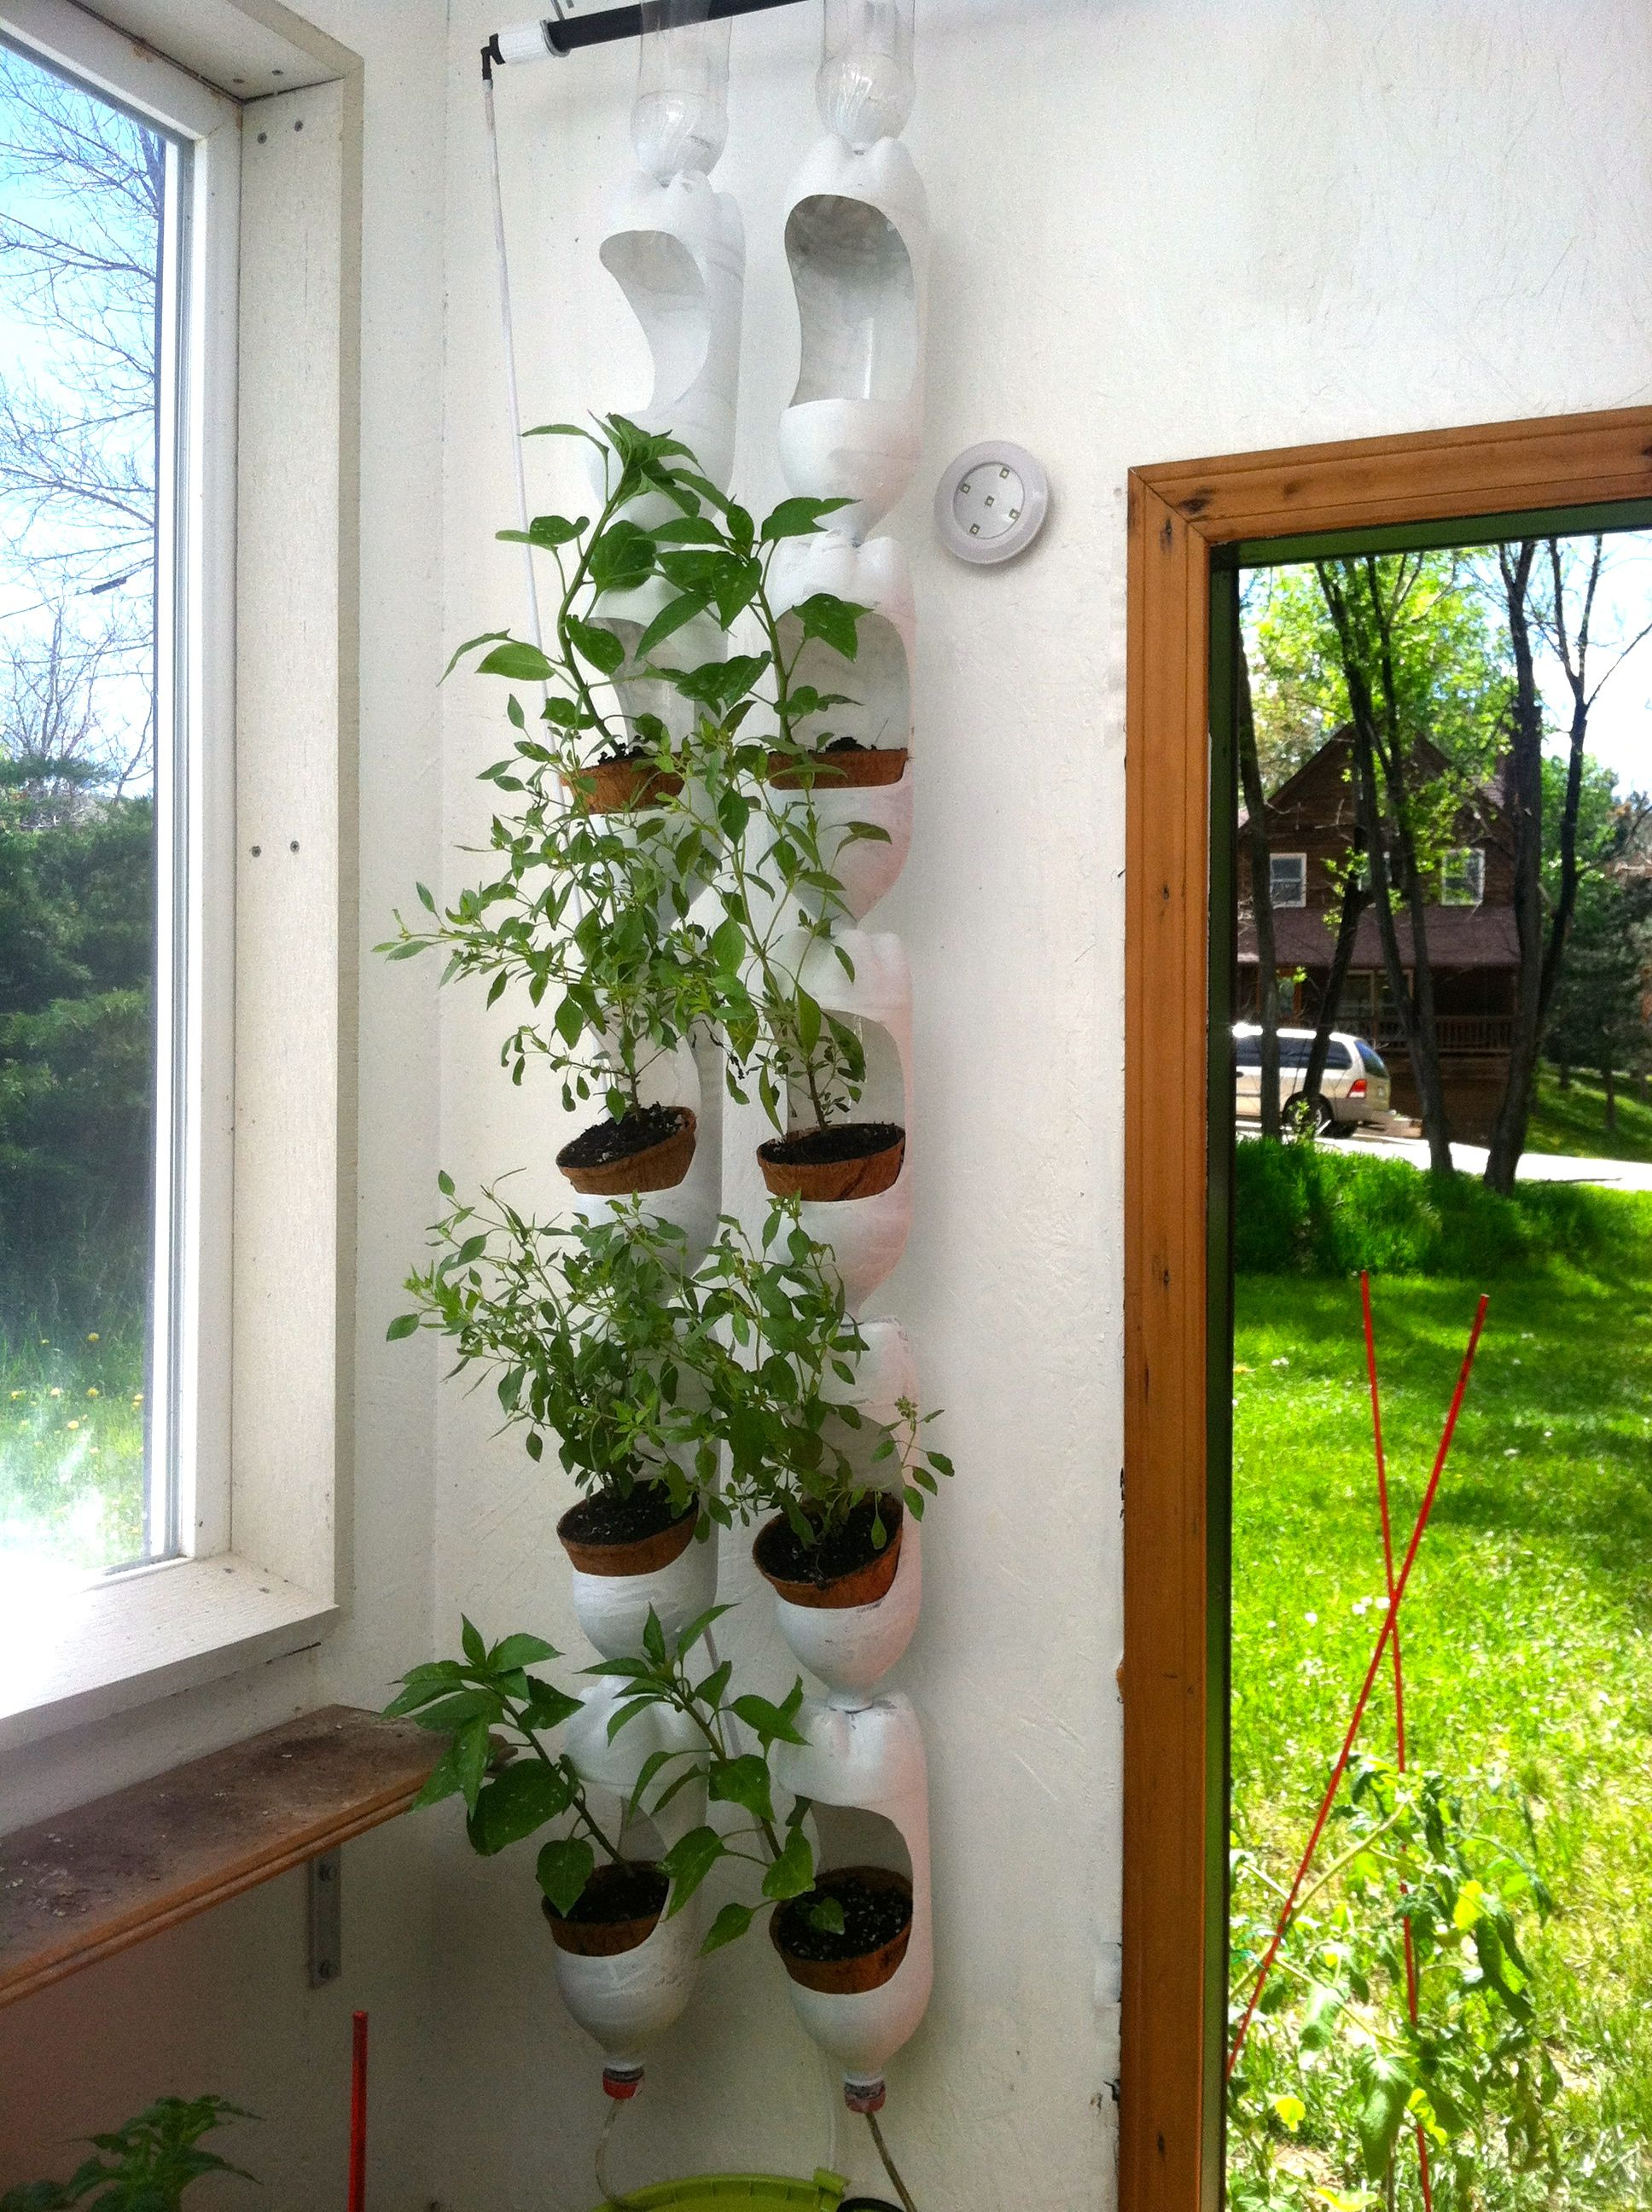 classy idea vertical wall planters. Plenty of basil growing in vertical garden made out recycled soda bottles